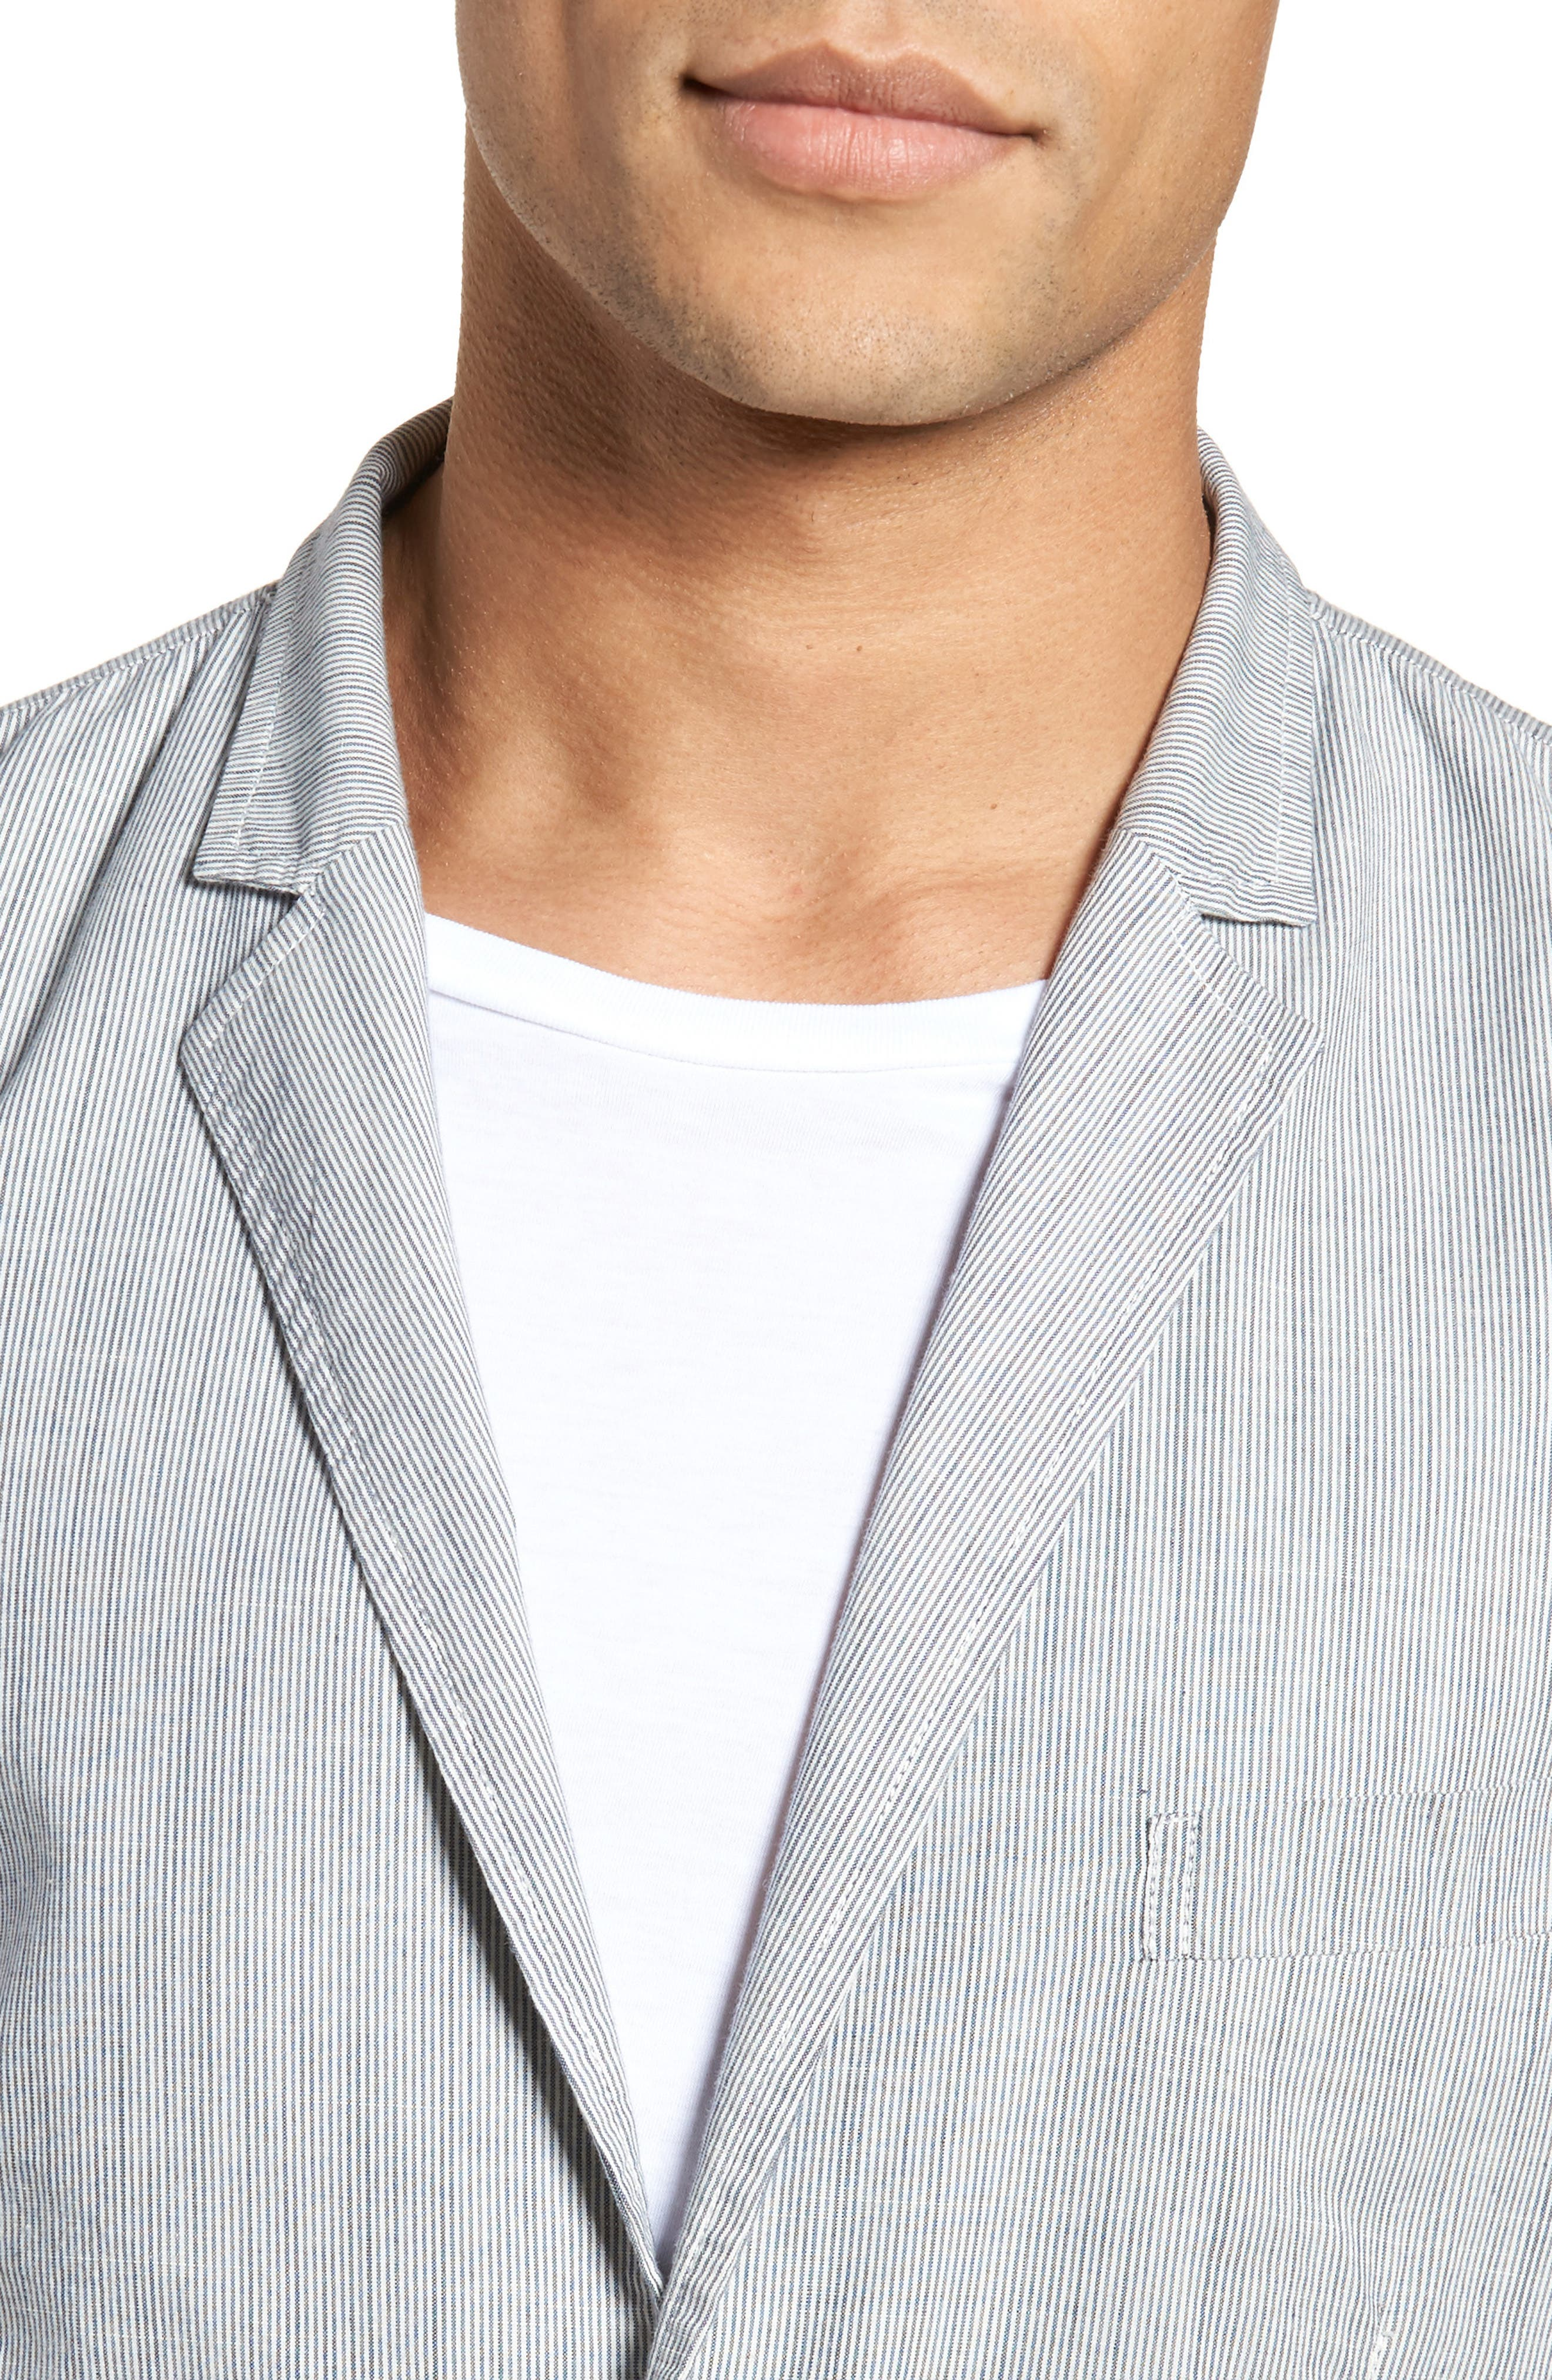 Stripe Cotton Blazer,                             Alternate thumbnail 4, color,                             True Gray